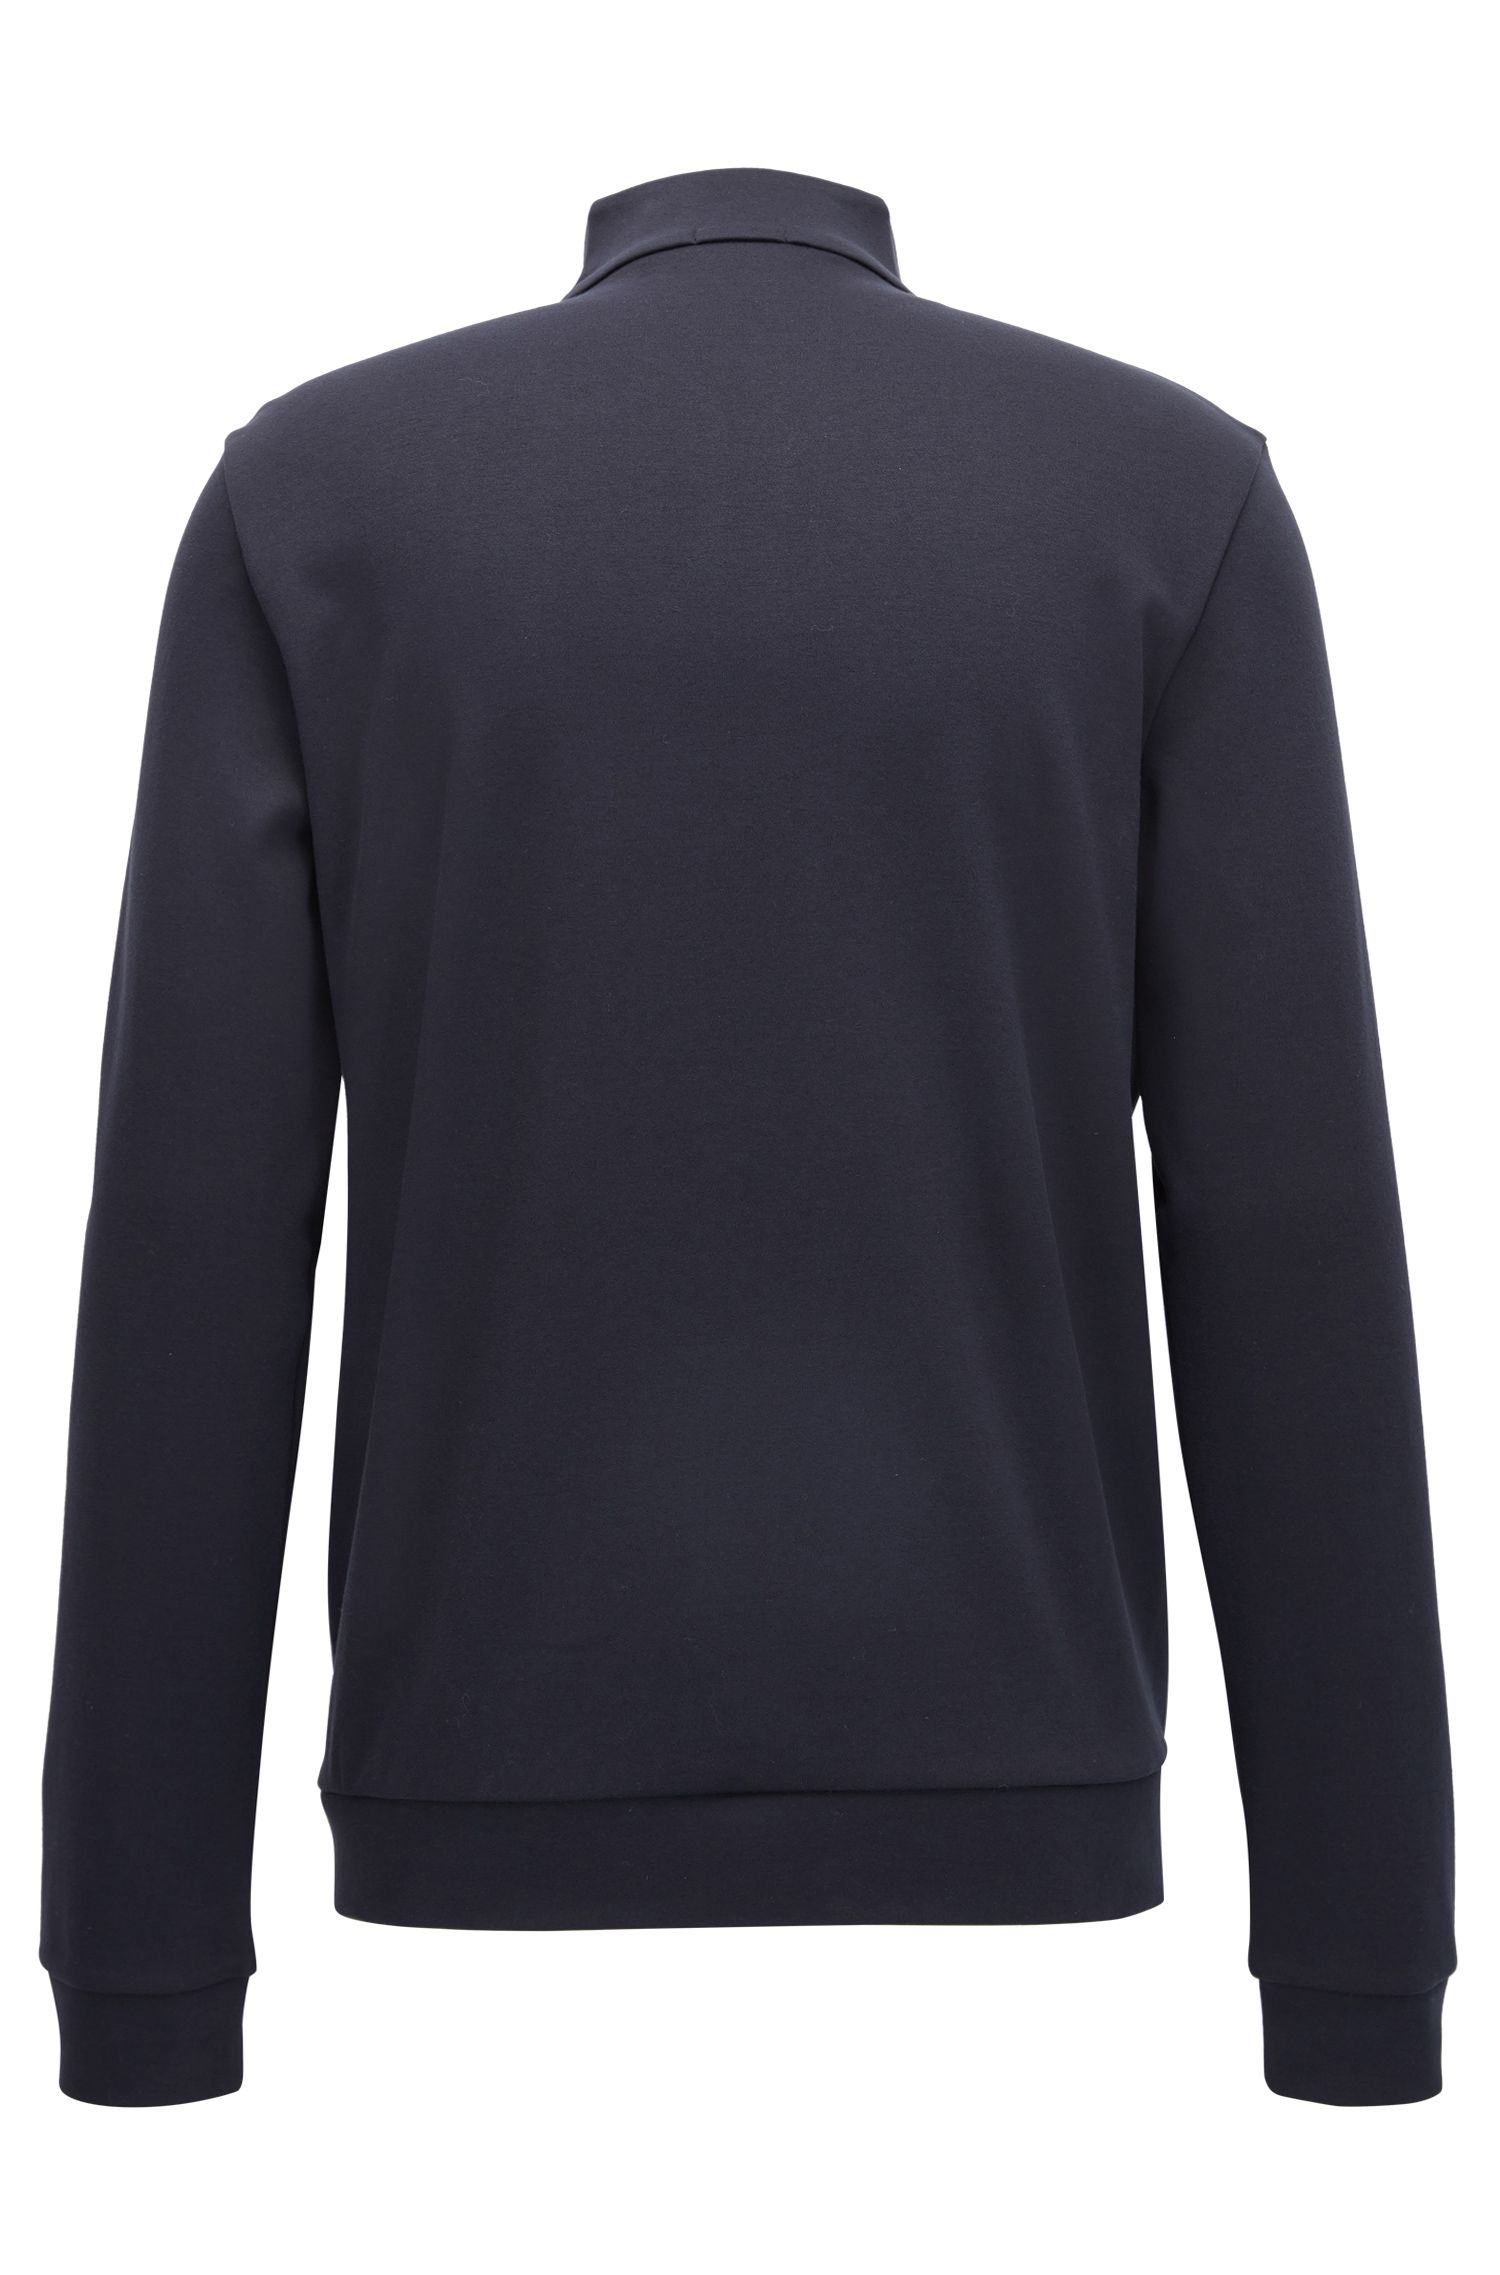 Zip-through sweatshirt in mercerised cotton terry